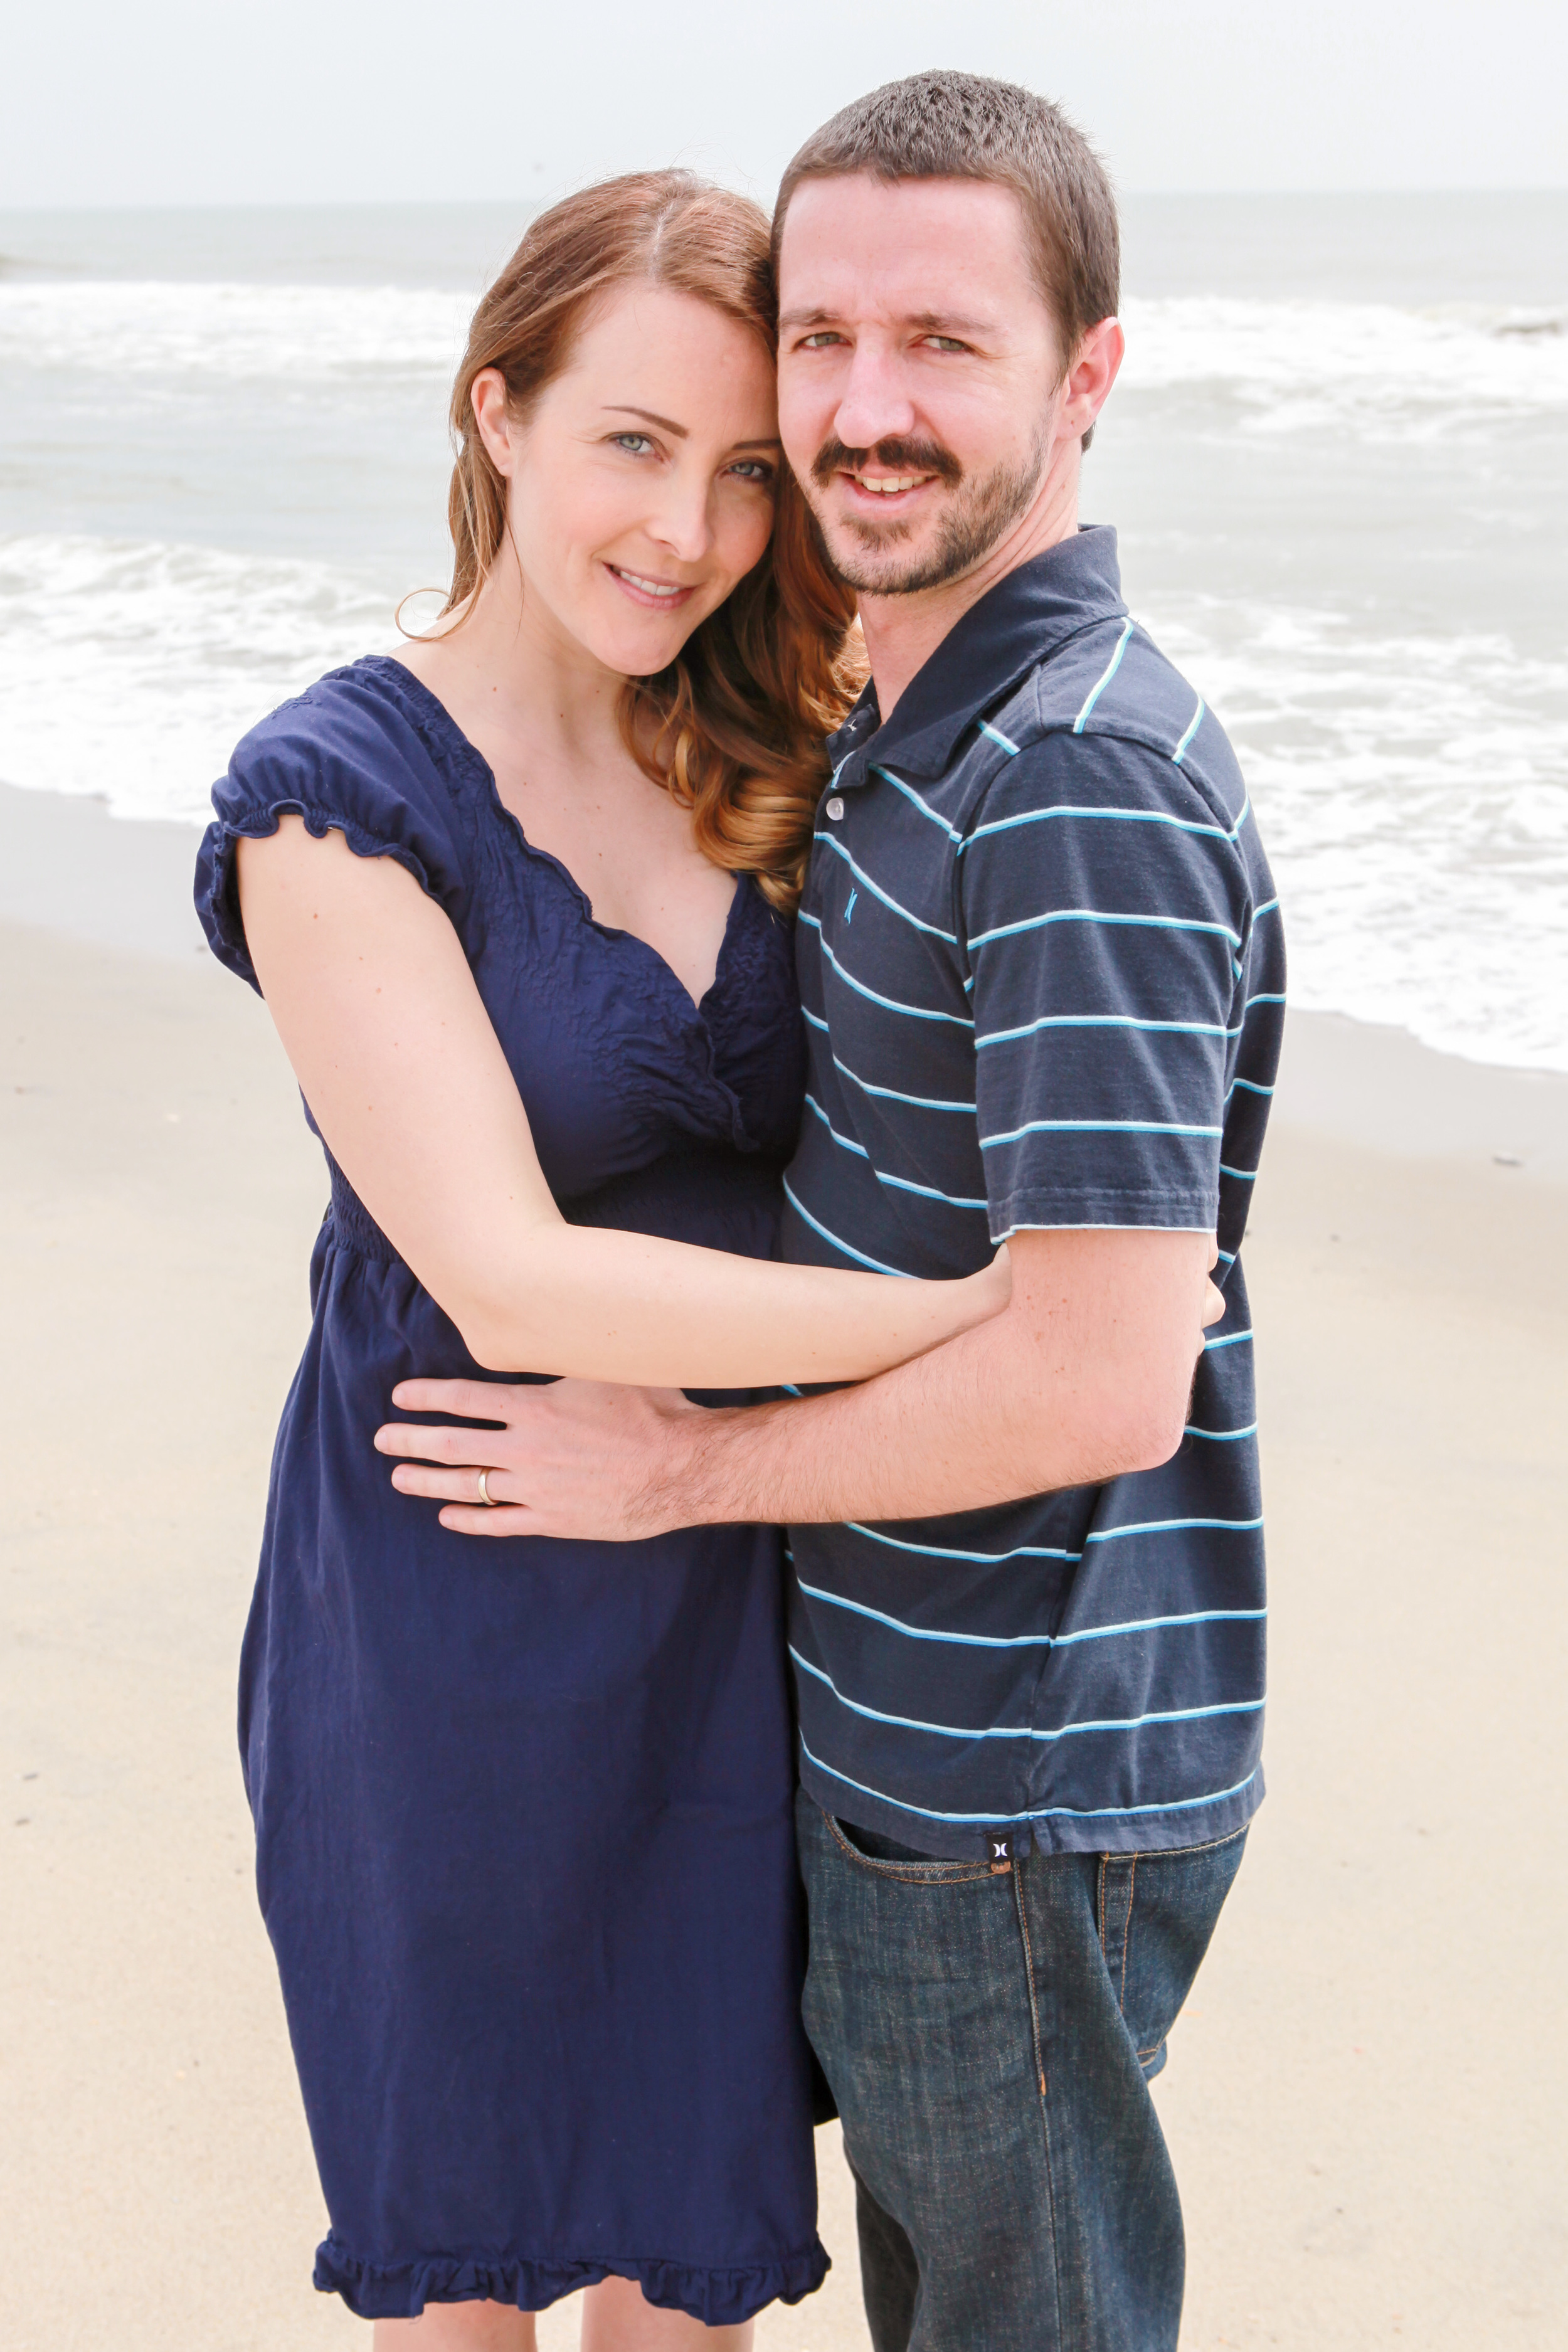 Wilmington_NC_Photographer_Maternity_Fort_fisher_Tiffany_Abruzzo_Photography_9.jpg